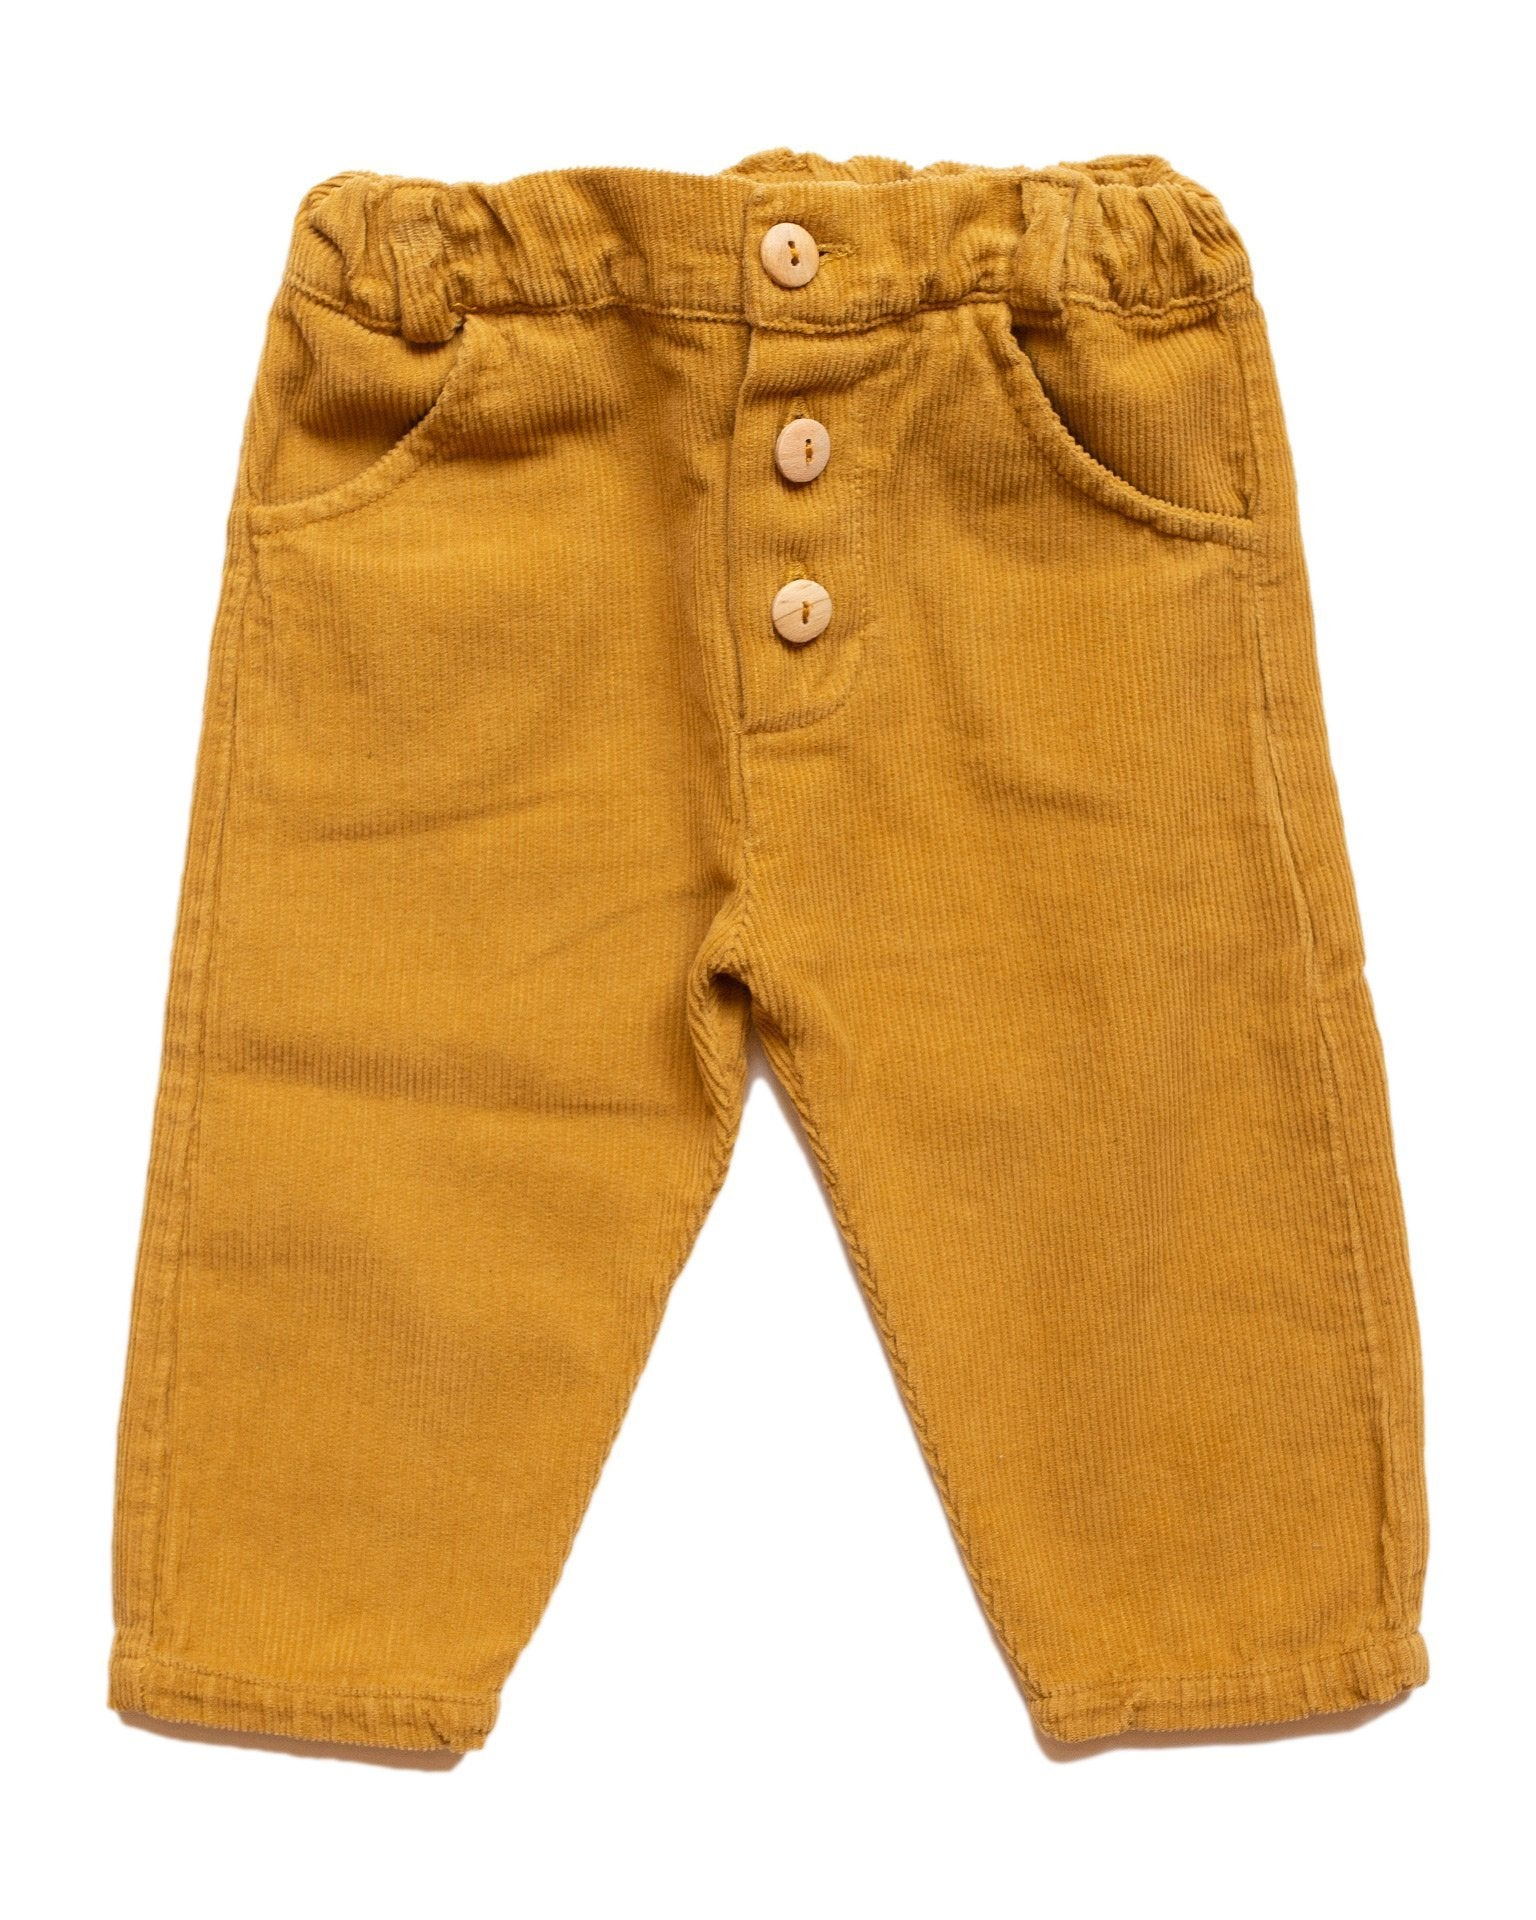 Little fin + vince baby boy button trouser in mustard